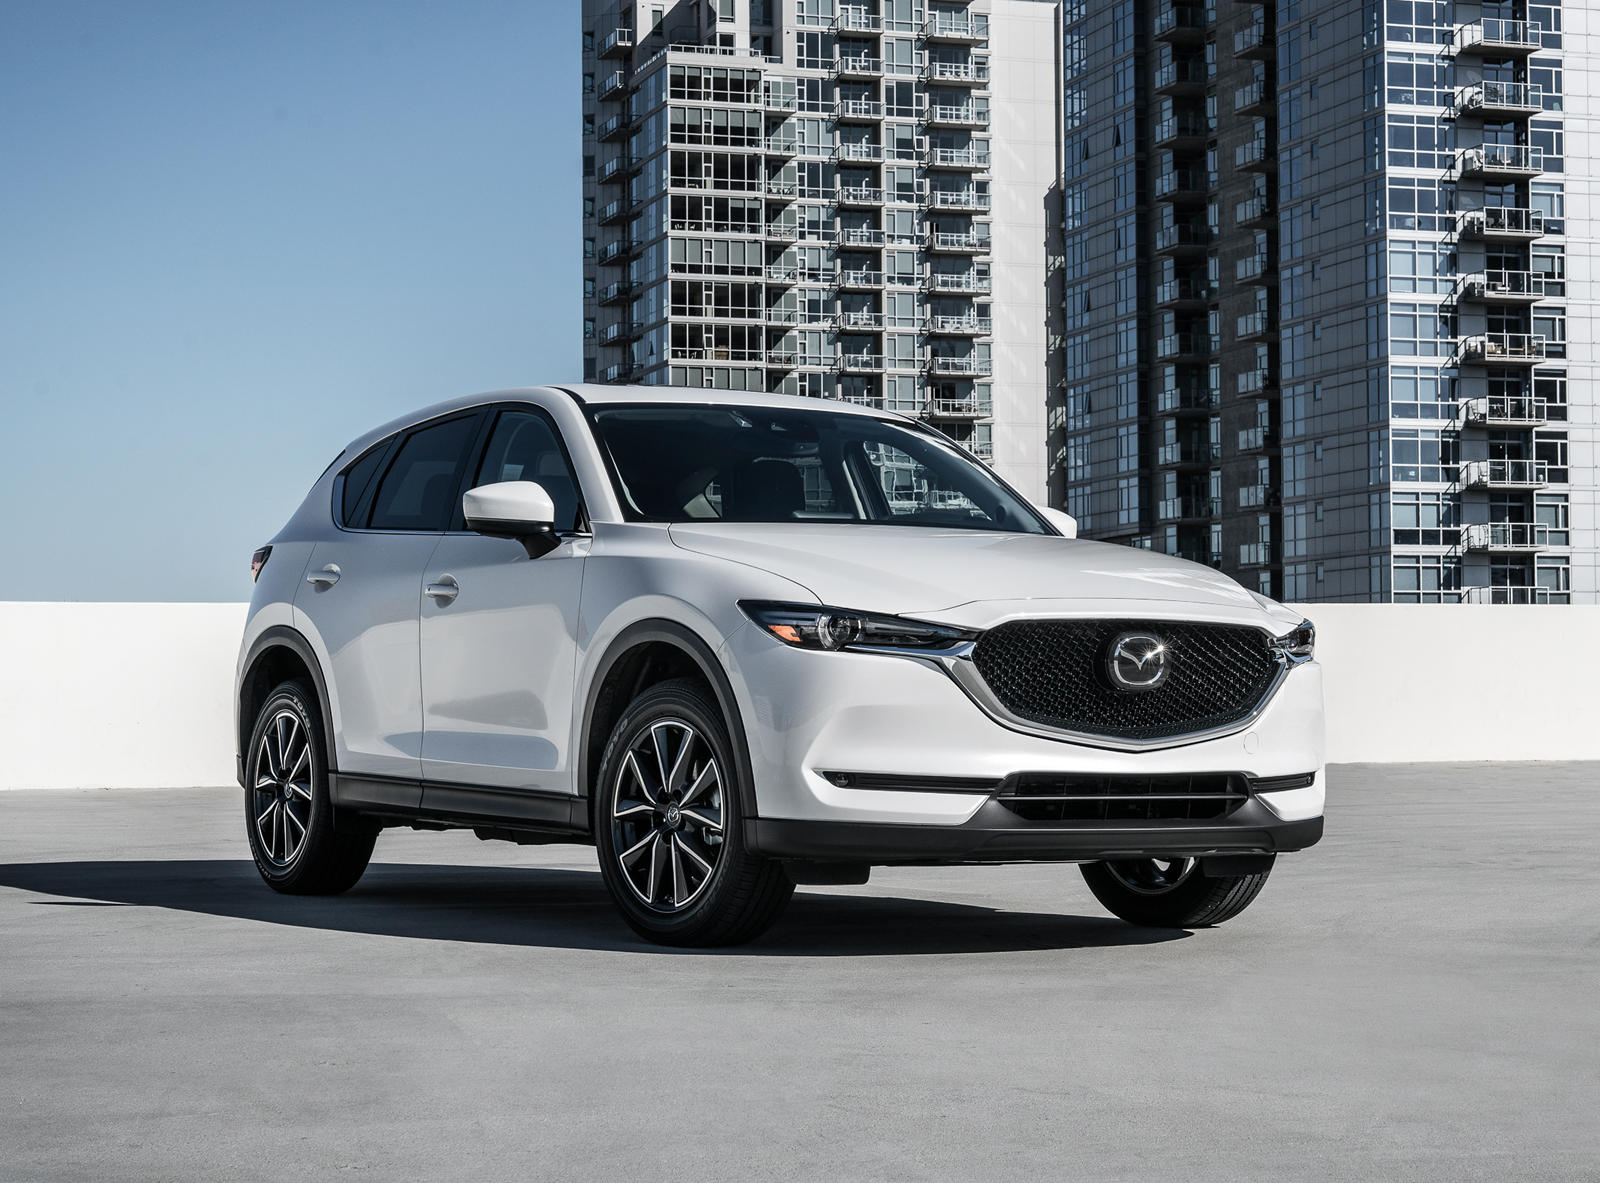 2019 Mazda Cx 5 Preview Pricing And Release Date